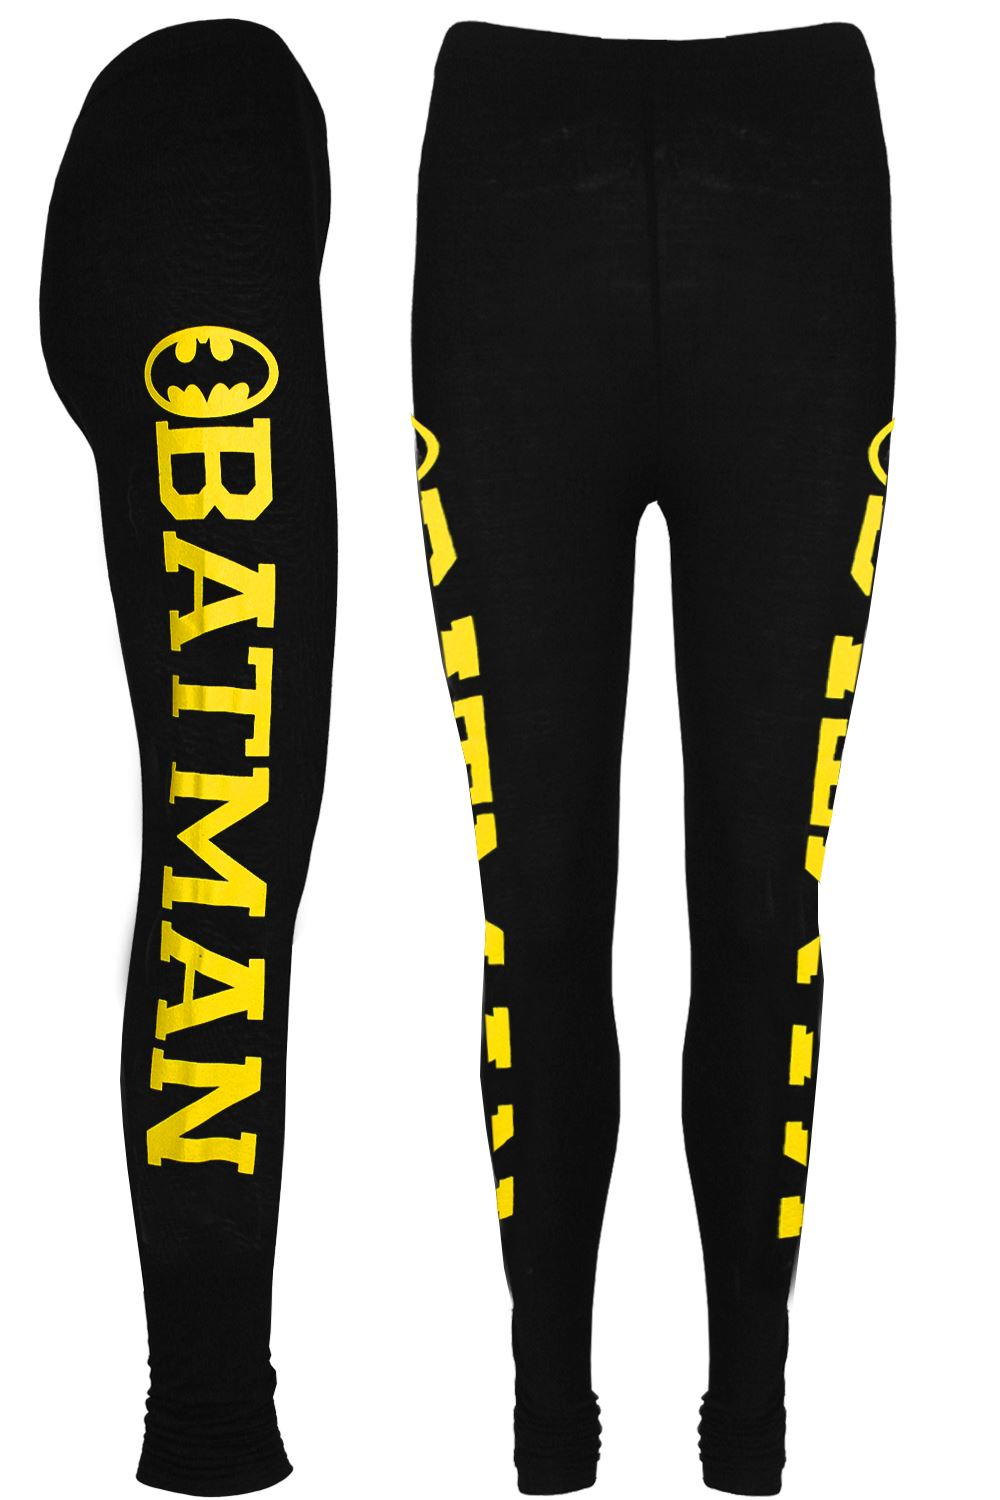 Apr 27,  · DC Comics Batman Silhouette Tights is rated out of 5 by 6. Rated 5 out of 5 by Deedevonne1 from Super cute! Really cool tights! Look awesome with a black dress. Can be worn whenever. Date published: Rated 5 out of 5 by SelinaKyle from Purrrrfect Batman Tights! The fit is perfect. I bought the M/L and I'm 5'/5(6).